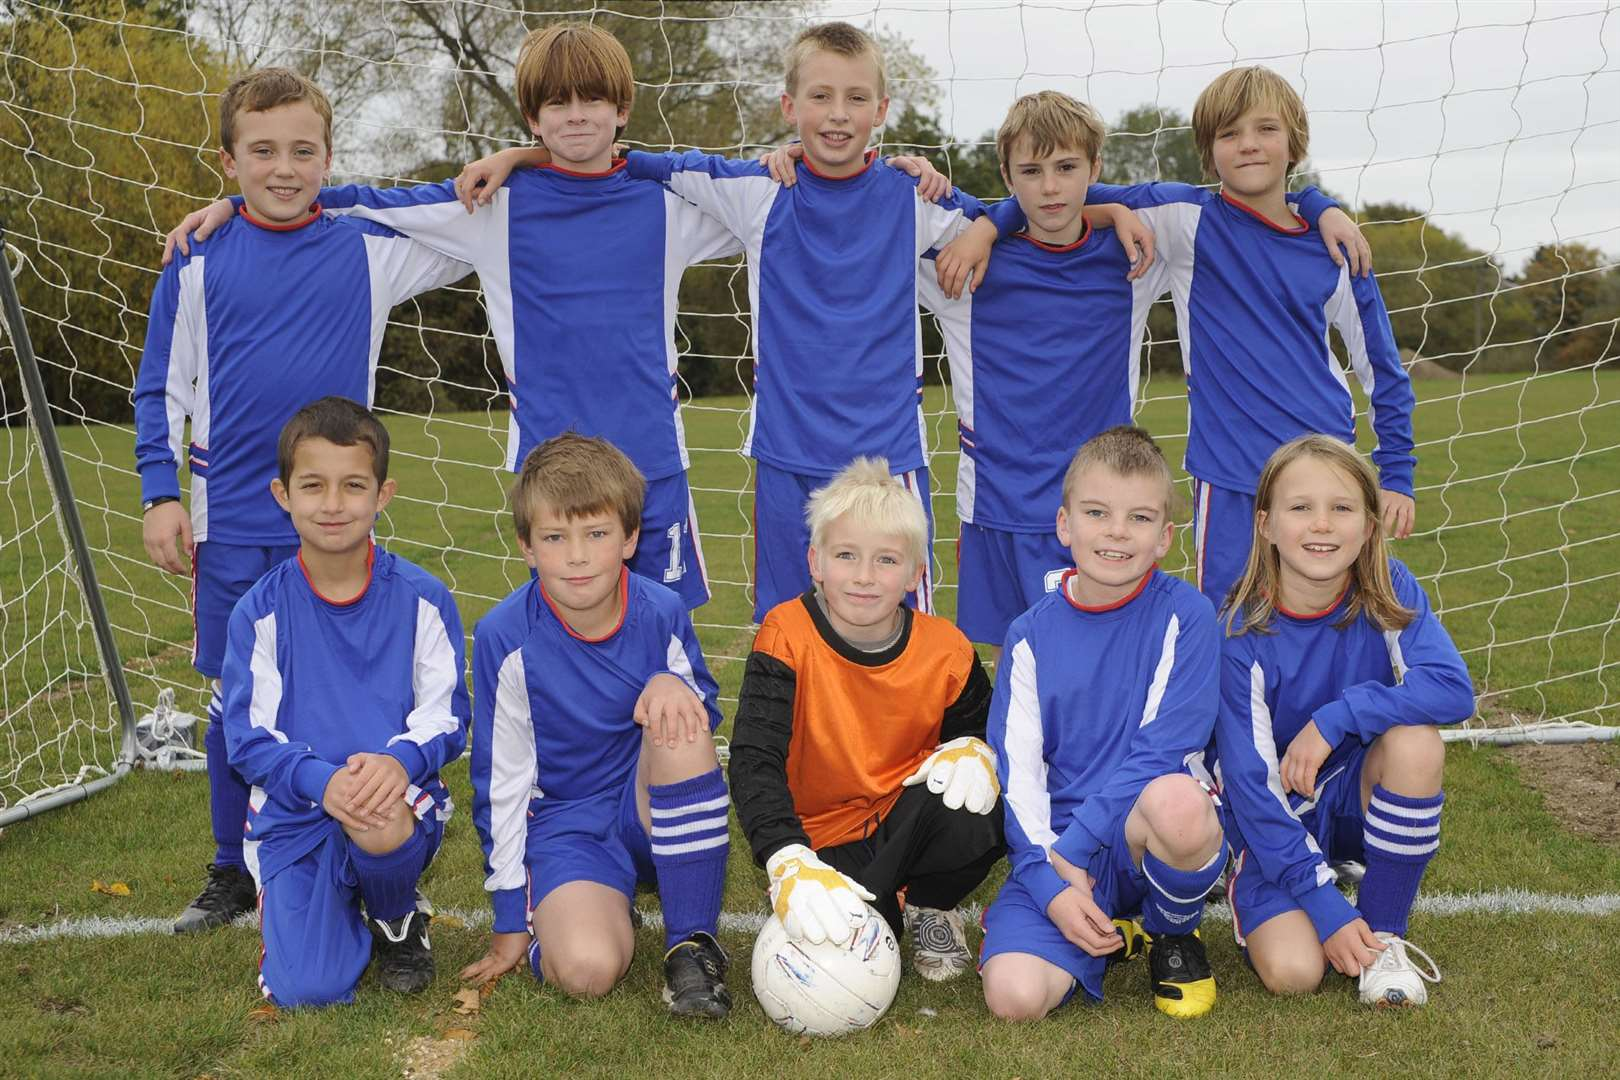 Eva Hubbard (bottom right) with the Eye Saints Under-10s